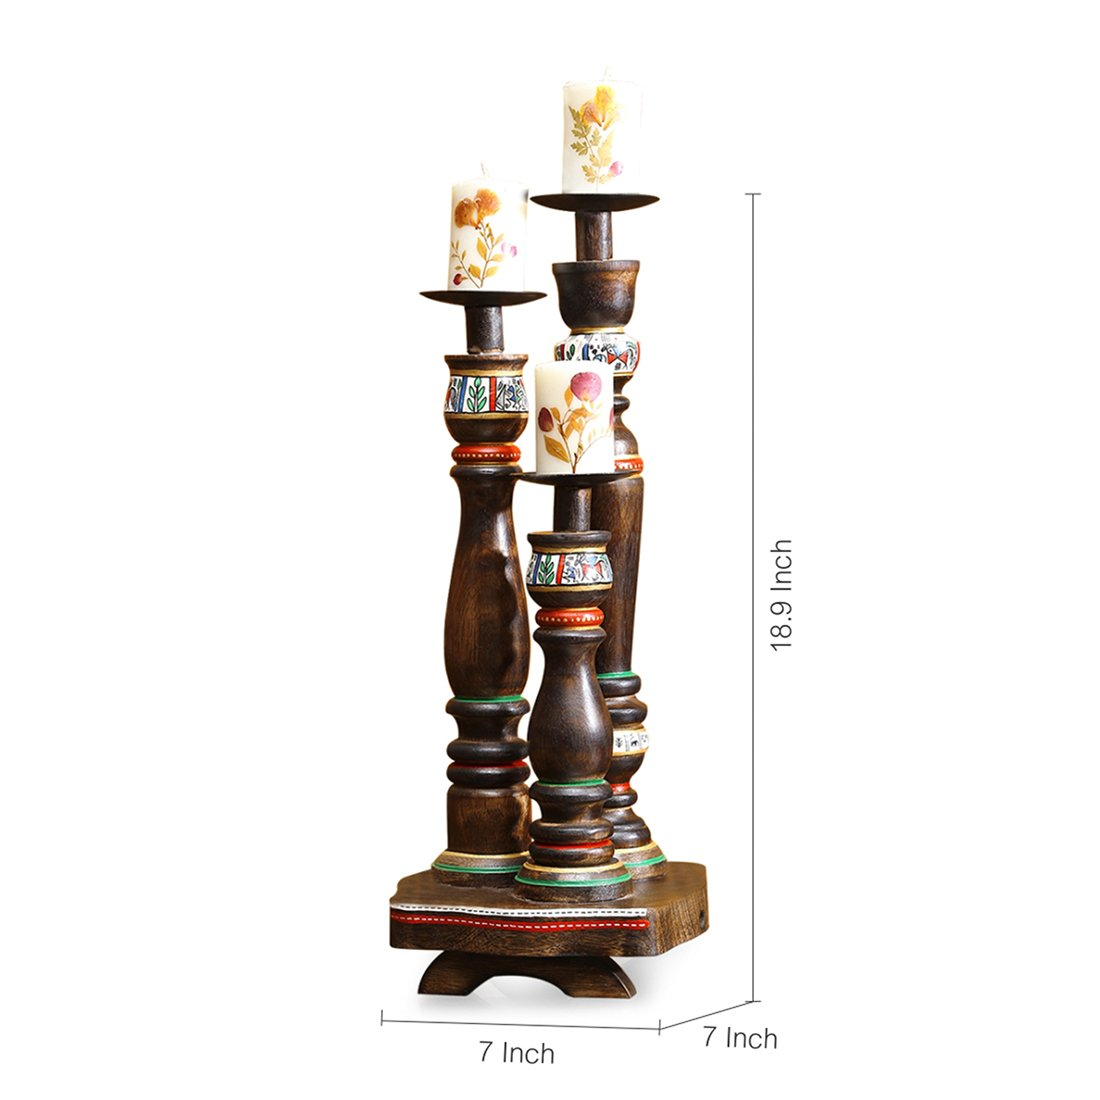 ExclusiveLane 'Candle Minarets' Warli Hand-Painted Candle Holders In Wood -Candle Holders Votive Candle Holder Tealight Candles Tea Light Home DÃcor T Light by ExclusiveLane (Image #4)